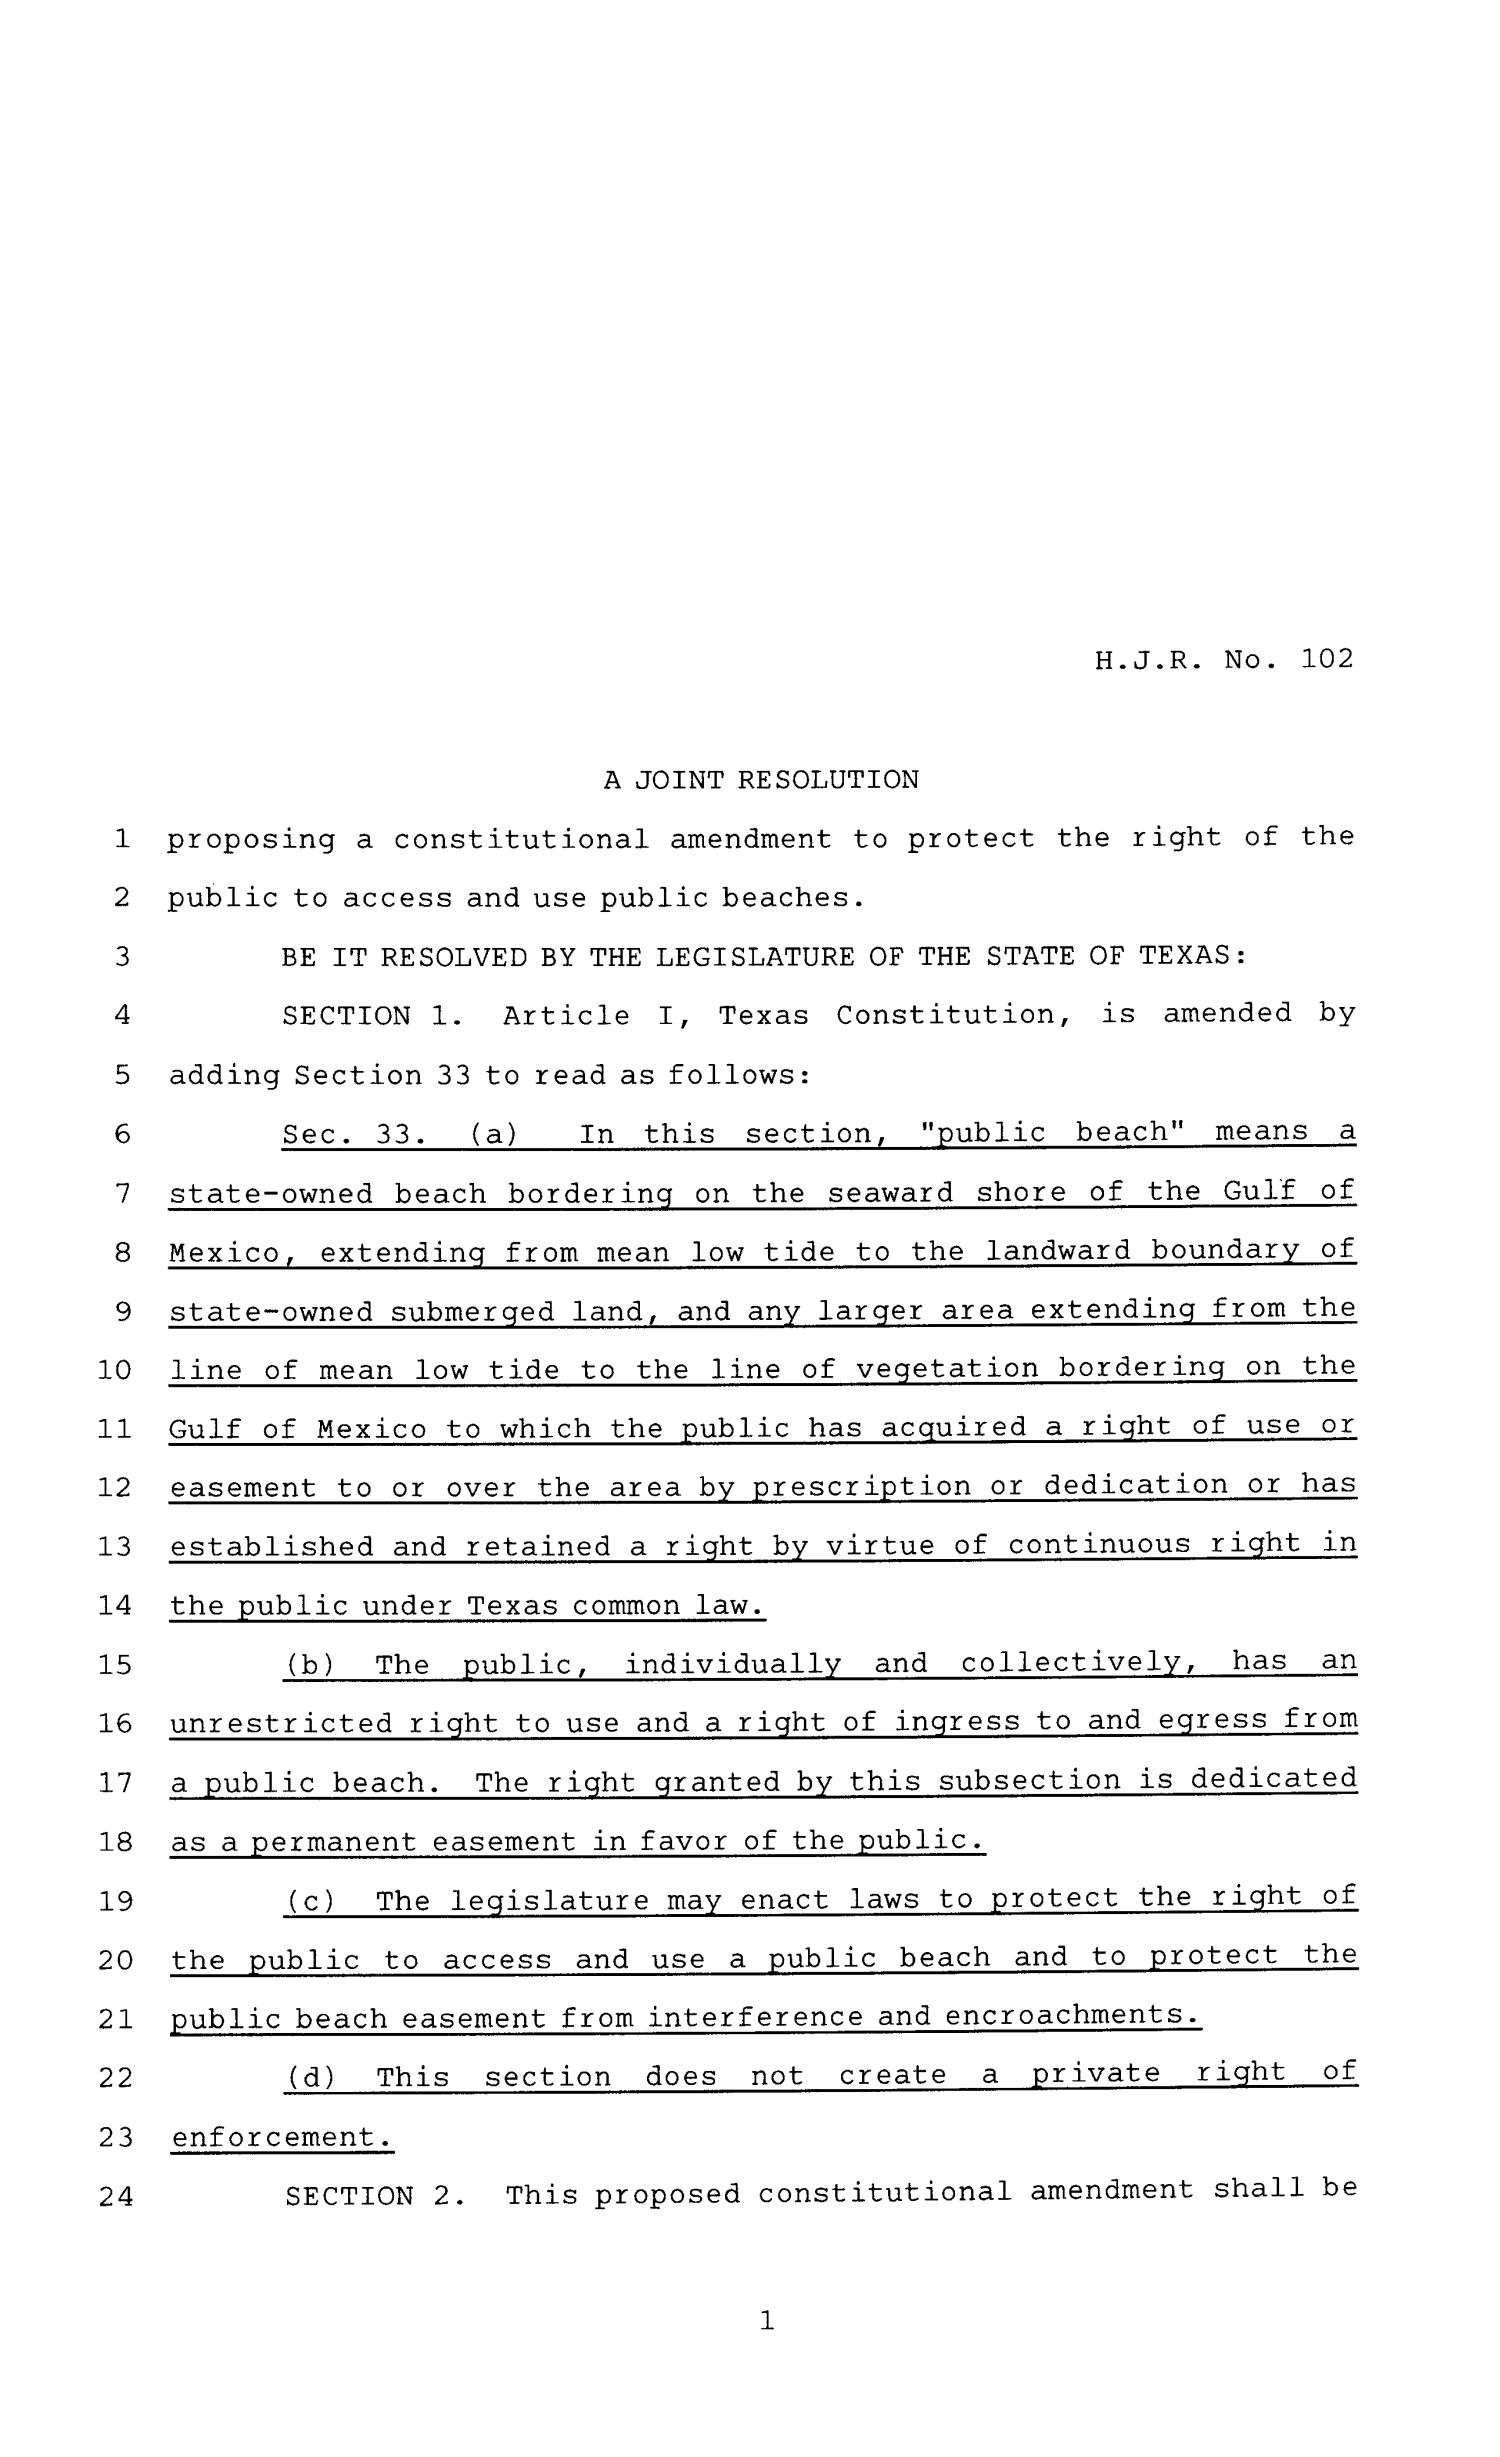 81st Texas Legislature, House Concurrent Resolution, House Bill 102                                                                                                      [Sequence #]: 1 of 3